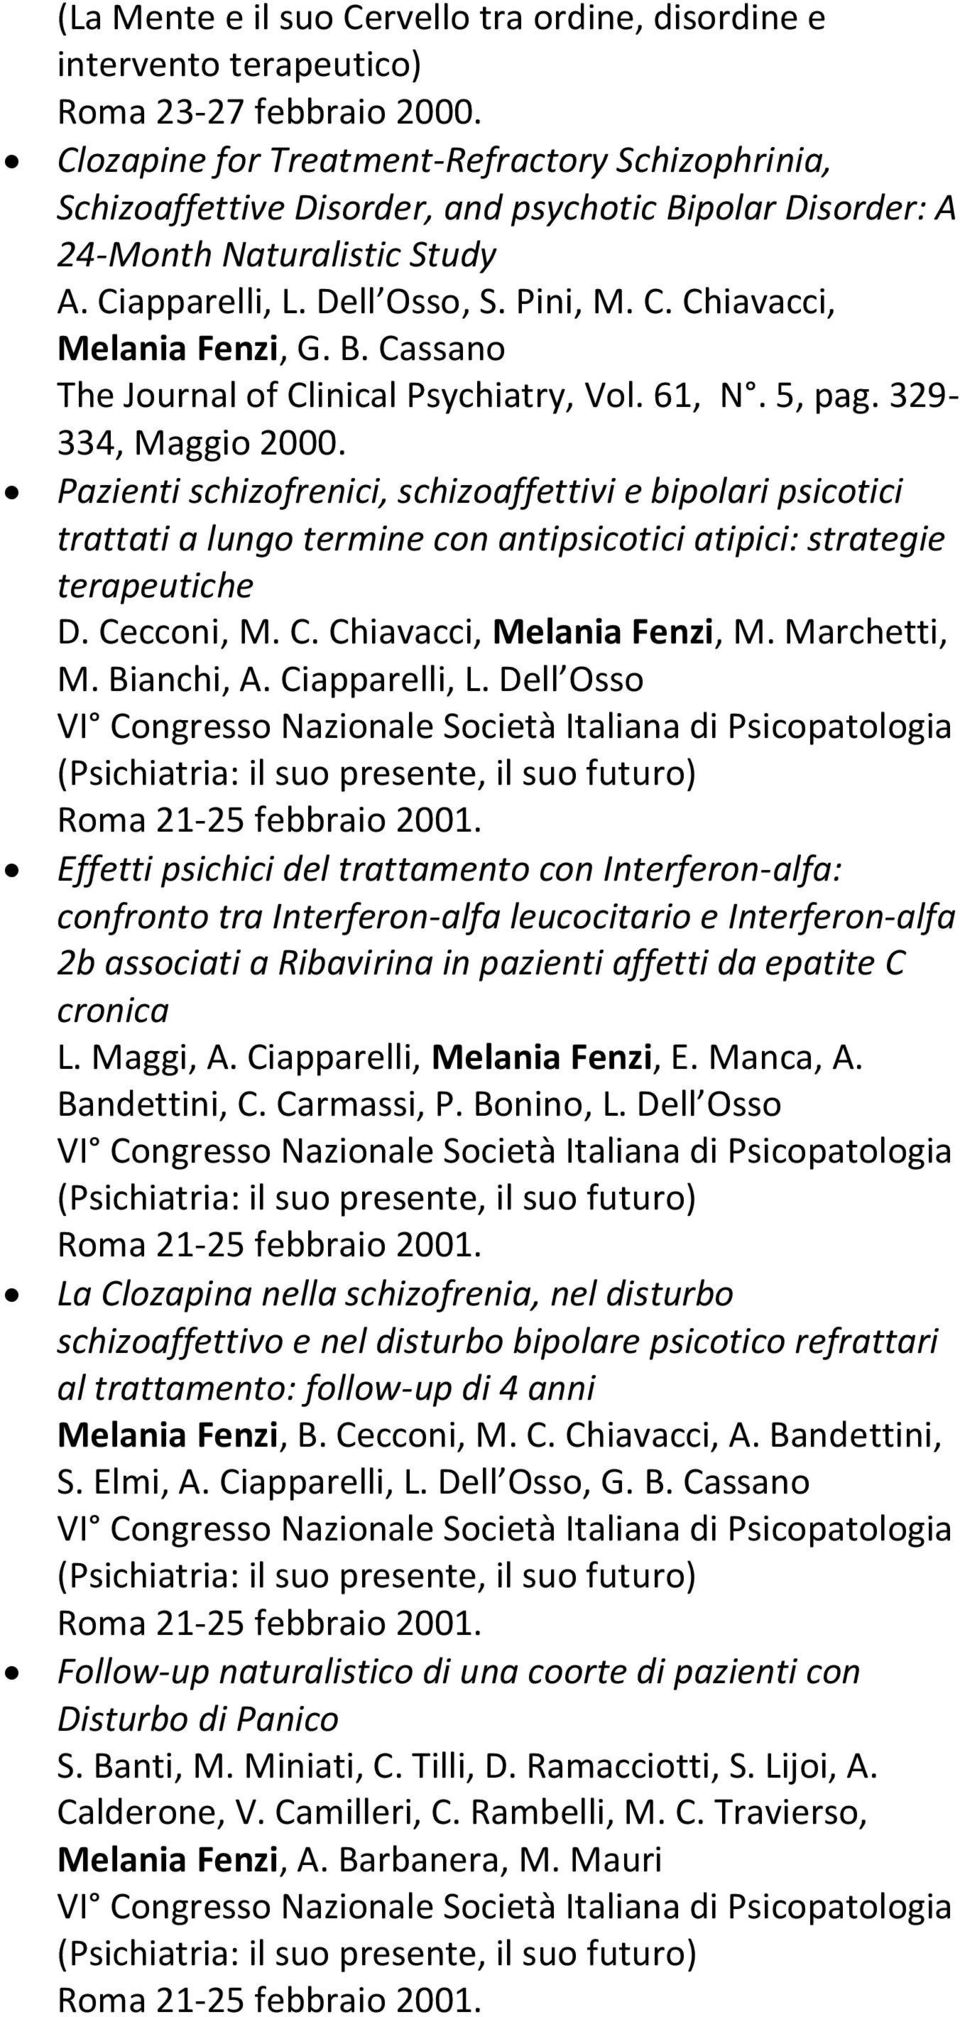 B. Cassano The Journal of Clinical Psychiatry, Vol. 61, N. 5, pag. 329-334, Maggio 2000.